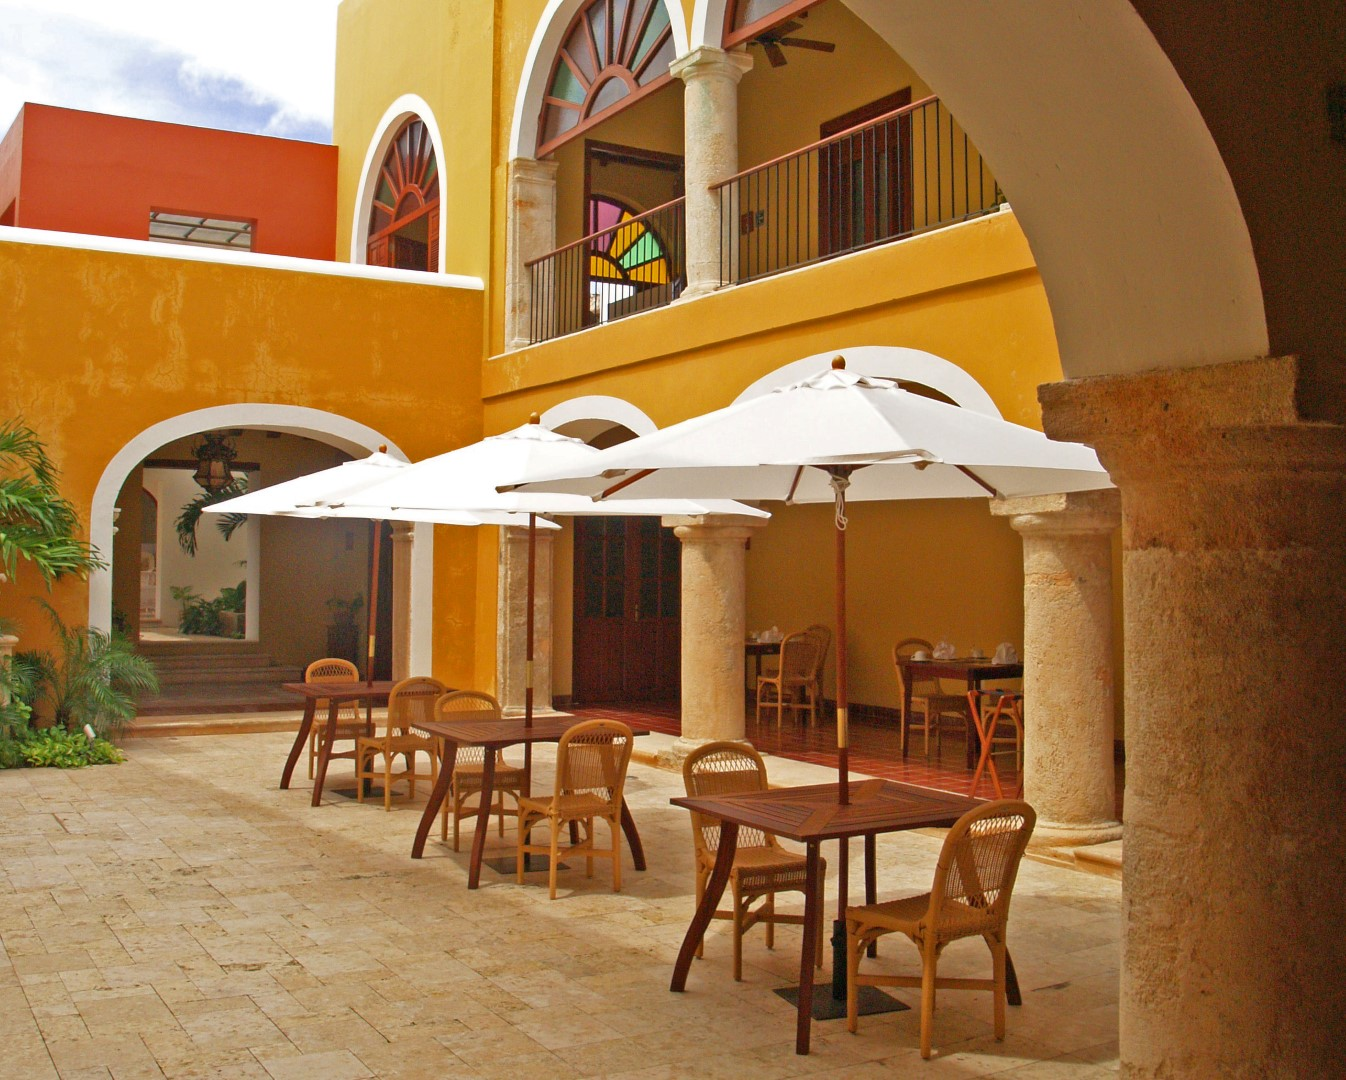 Courtyard seating at Casa Don Gustavo in Campeche